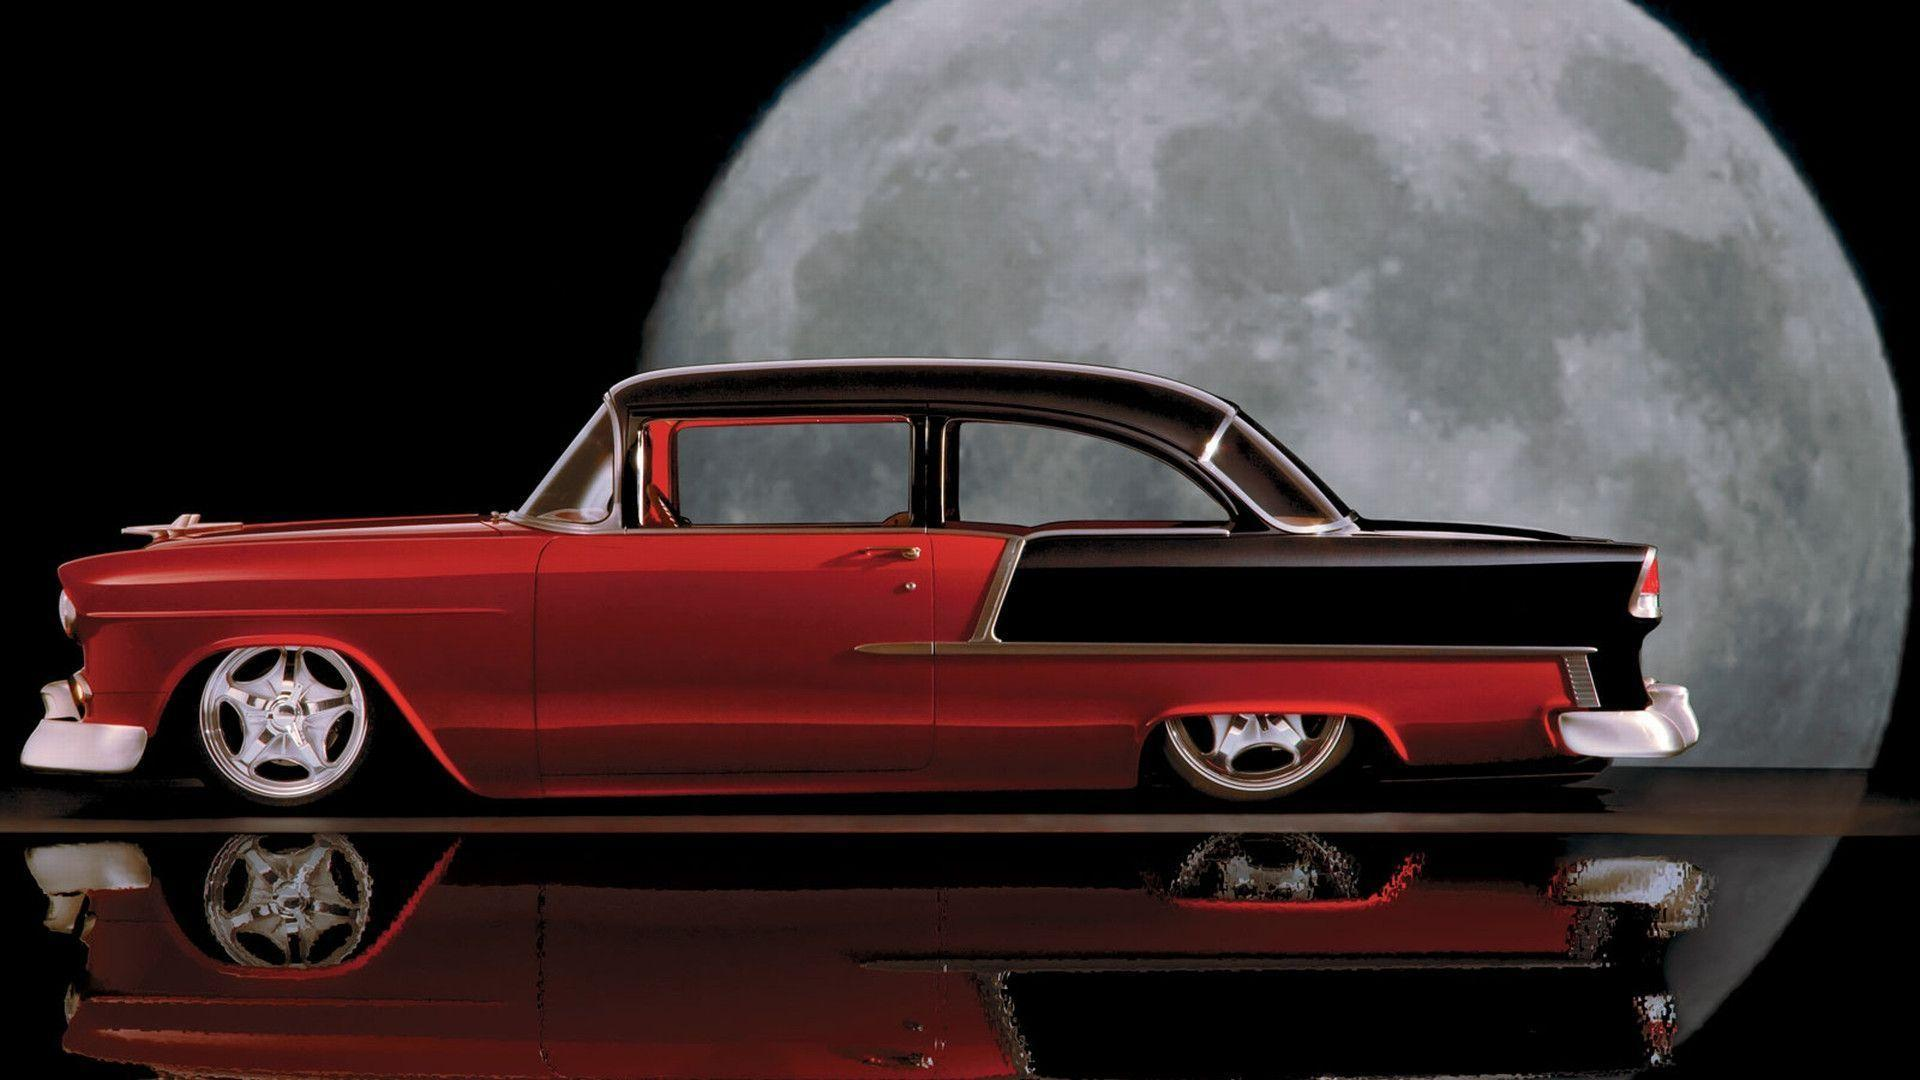 57 Chevy Wallpapers - Wallpaper Cave